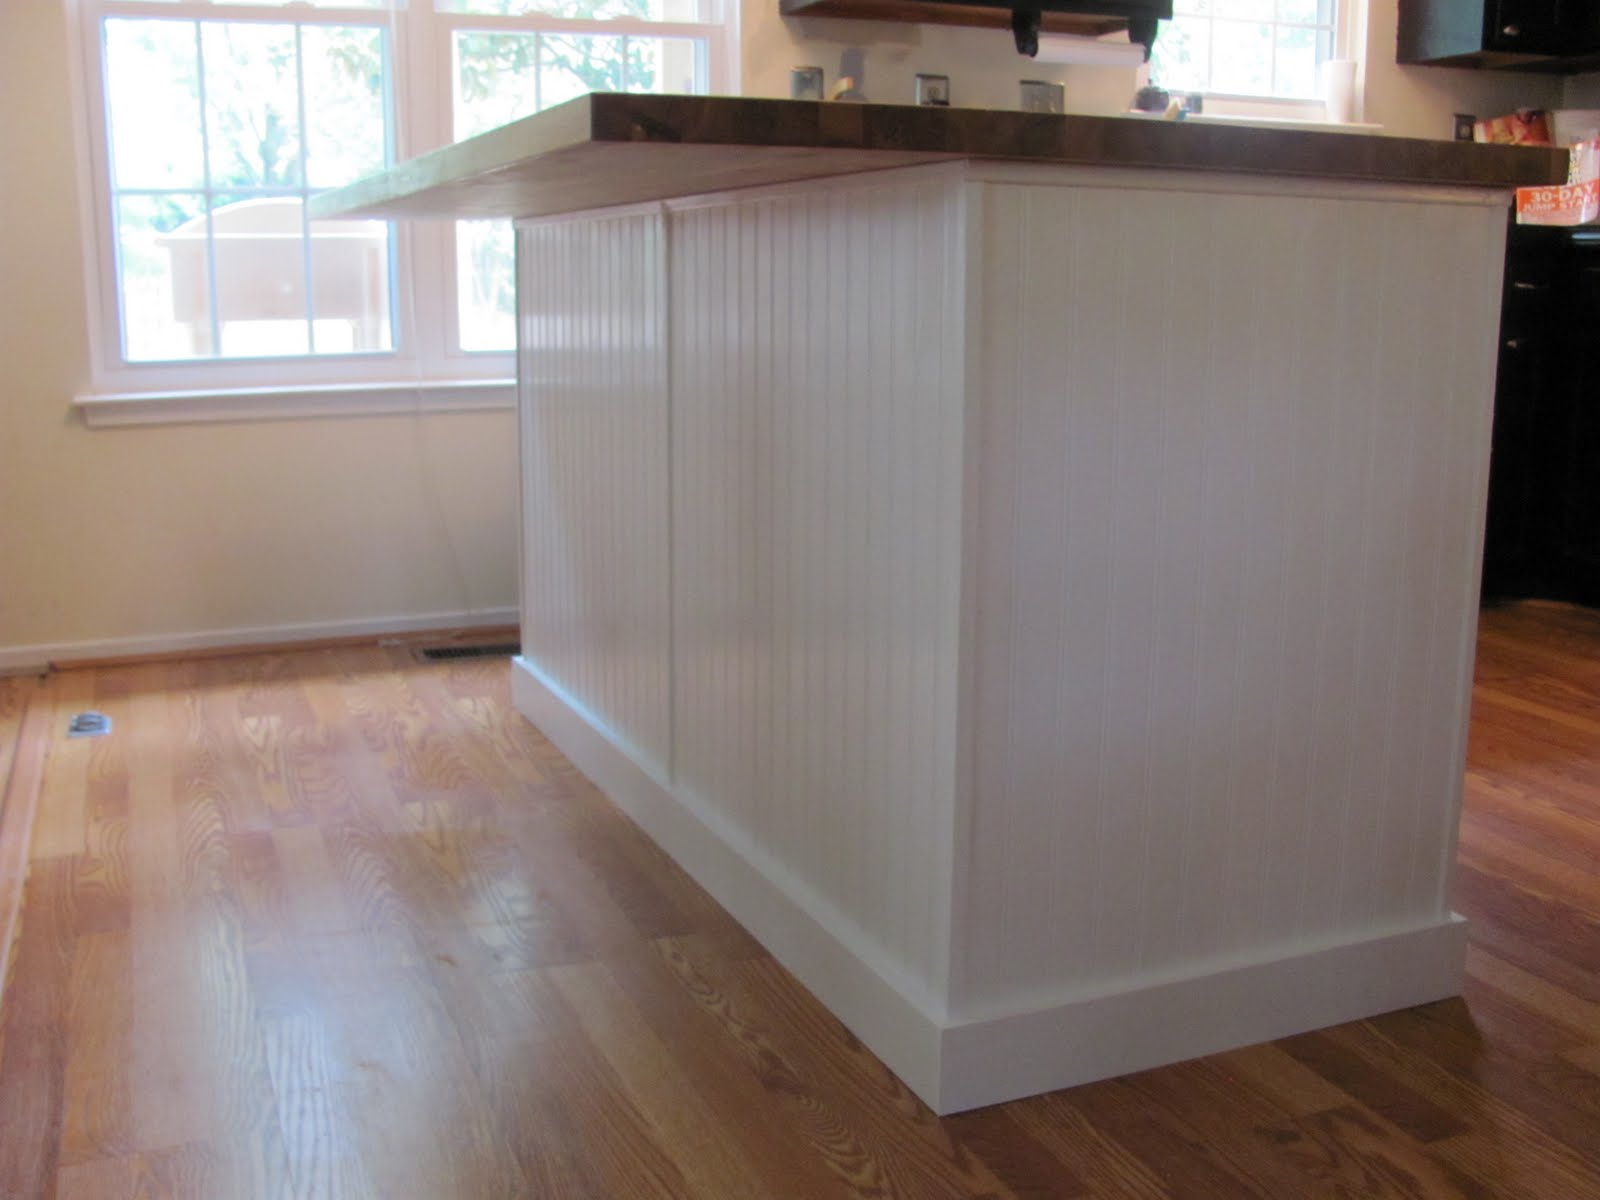 187 beaded board instant charm kitchen island wainscoting home design ideas pictures